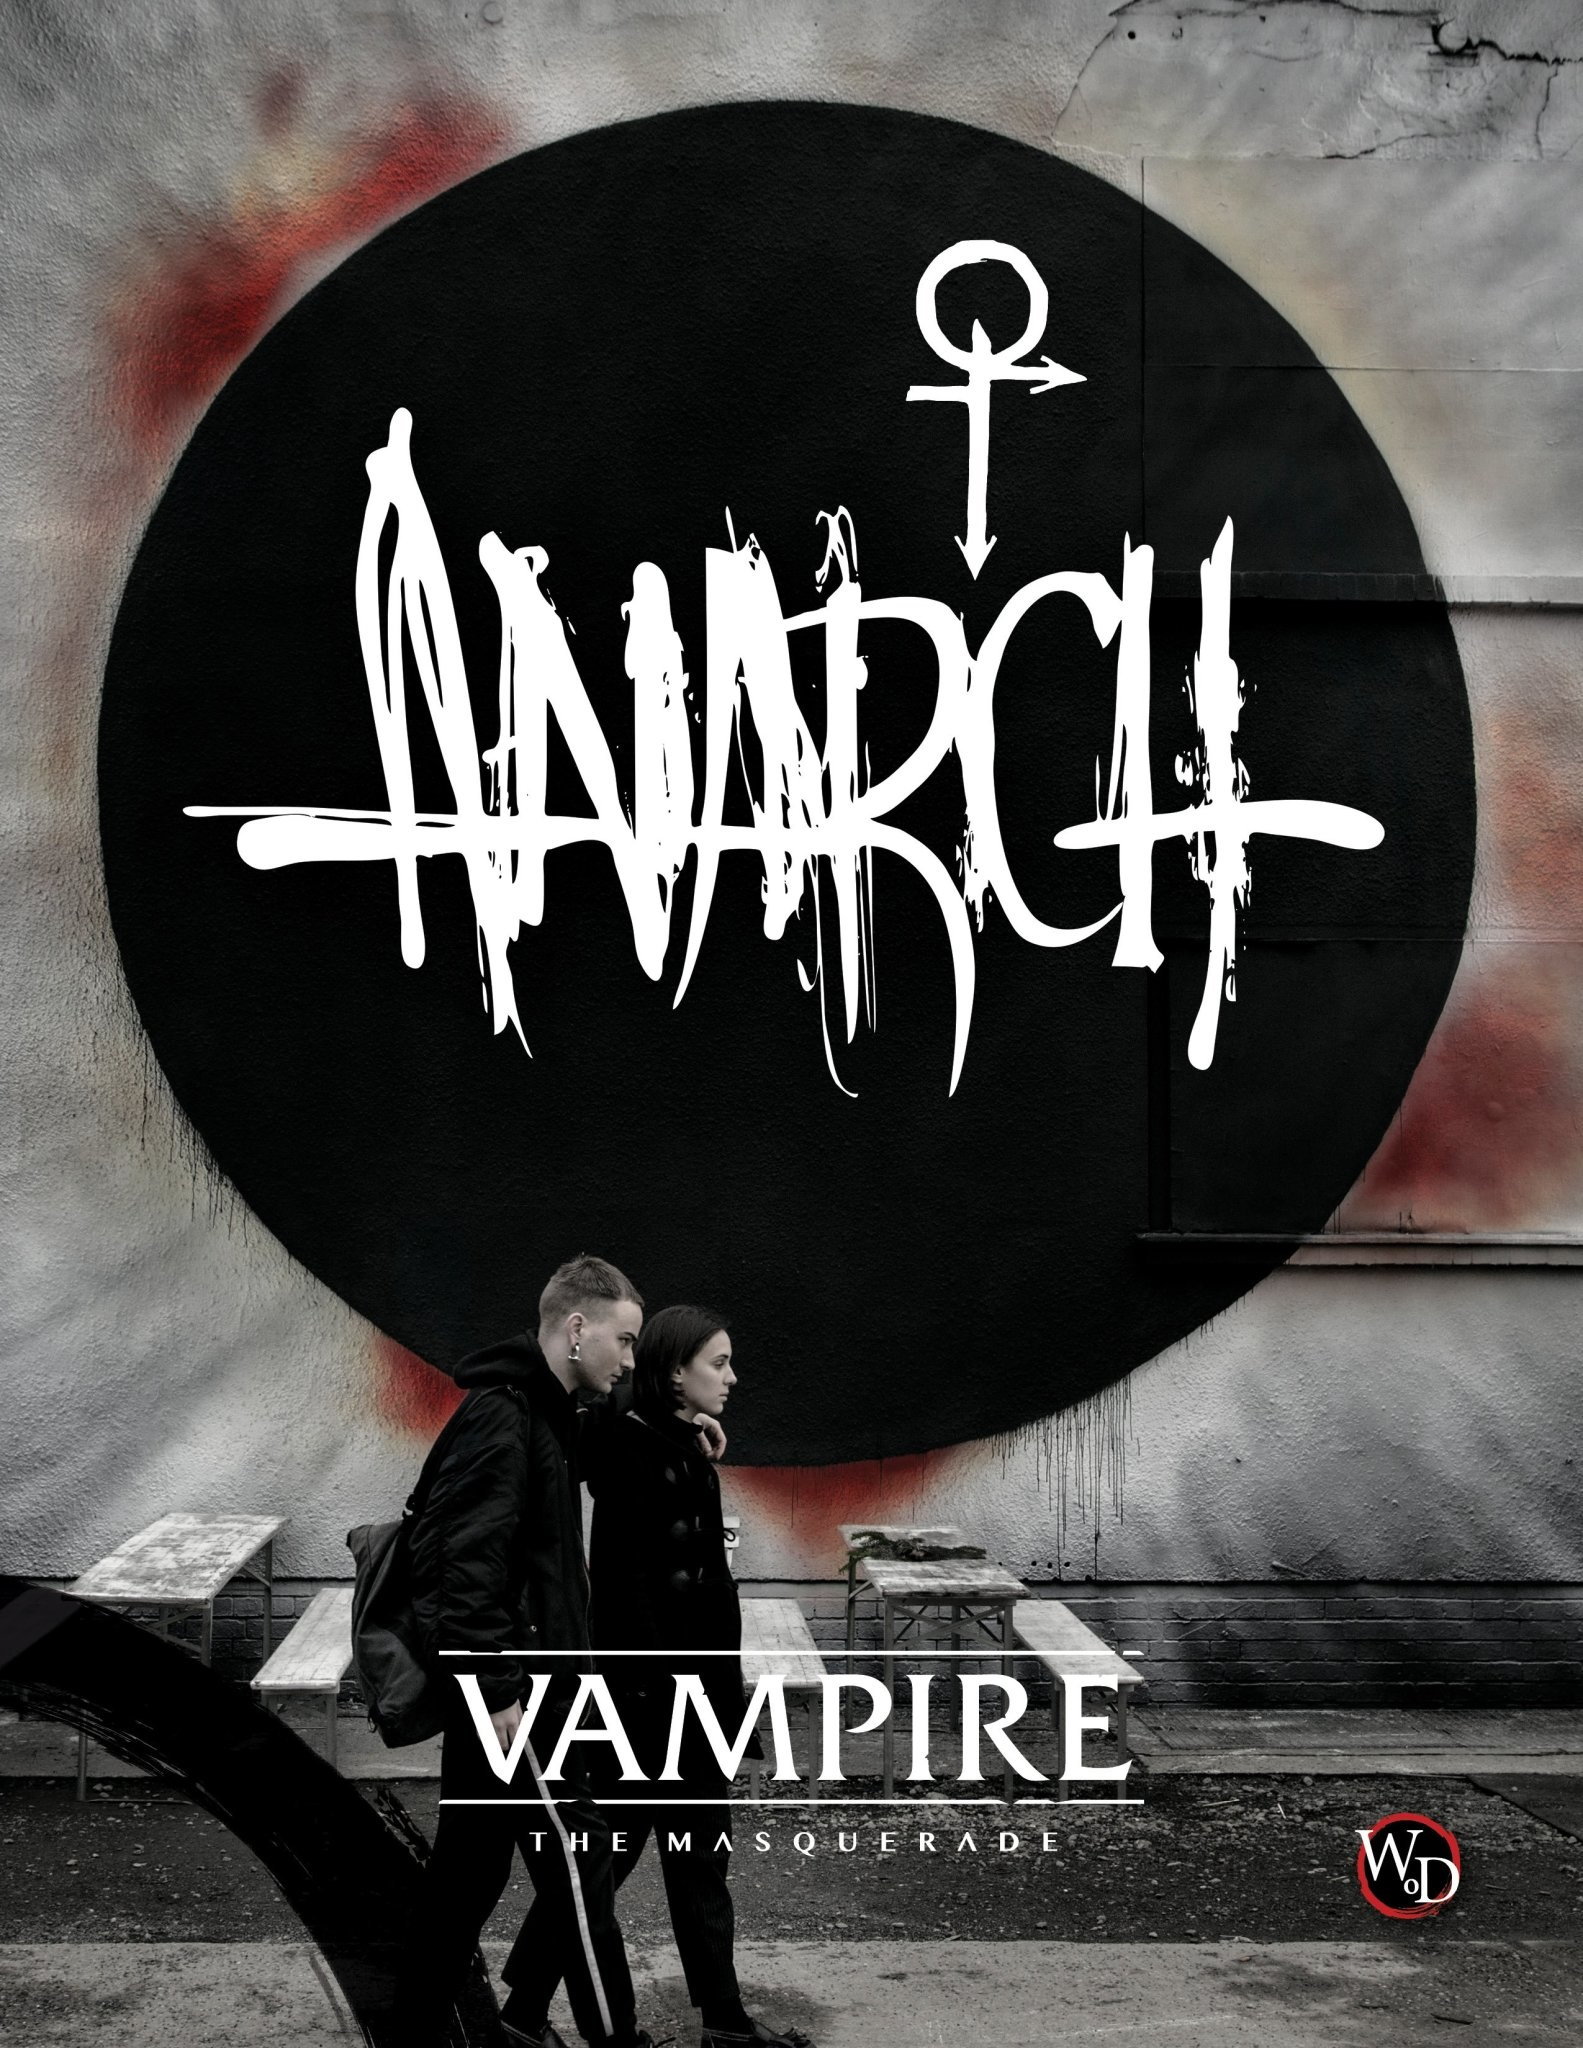 Vampire the Masquerade - Anarch